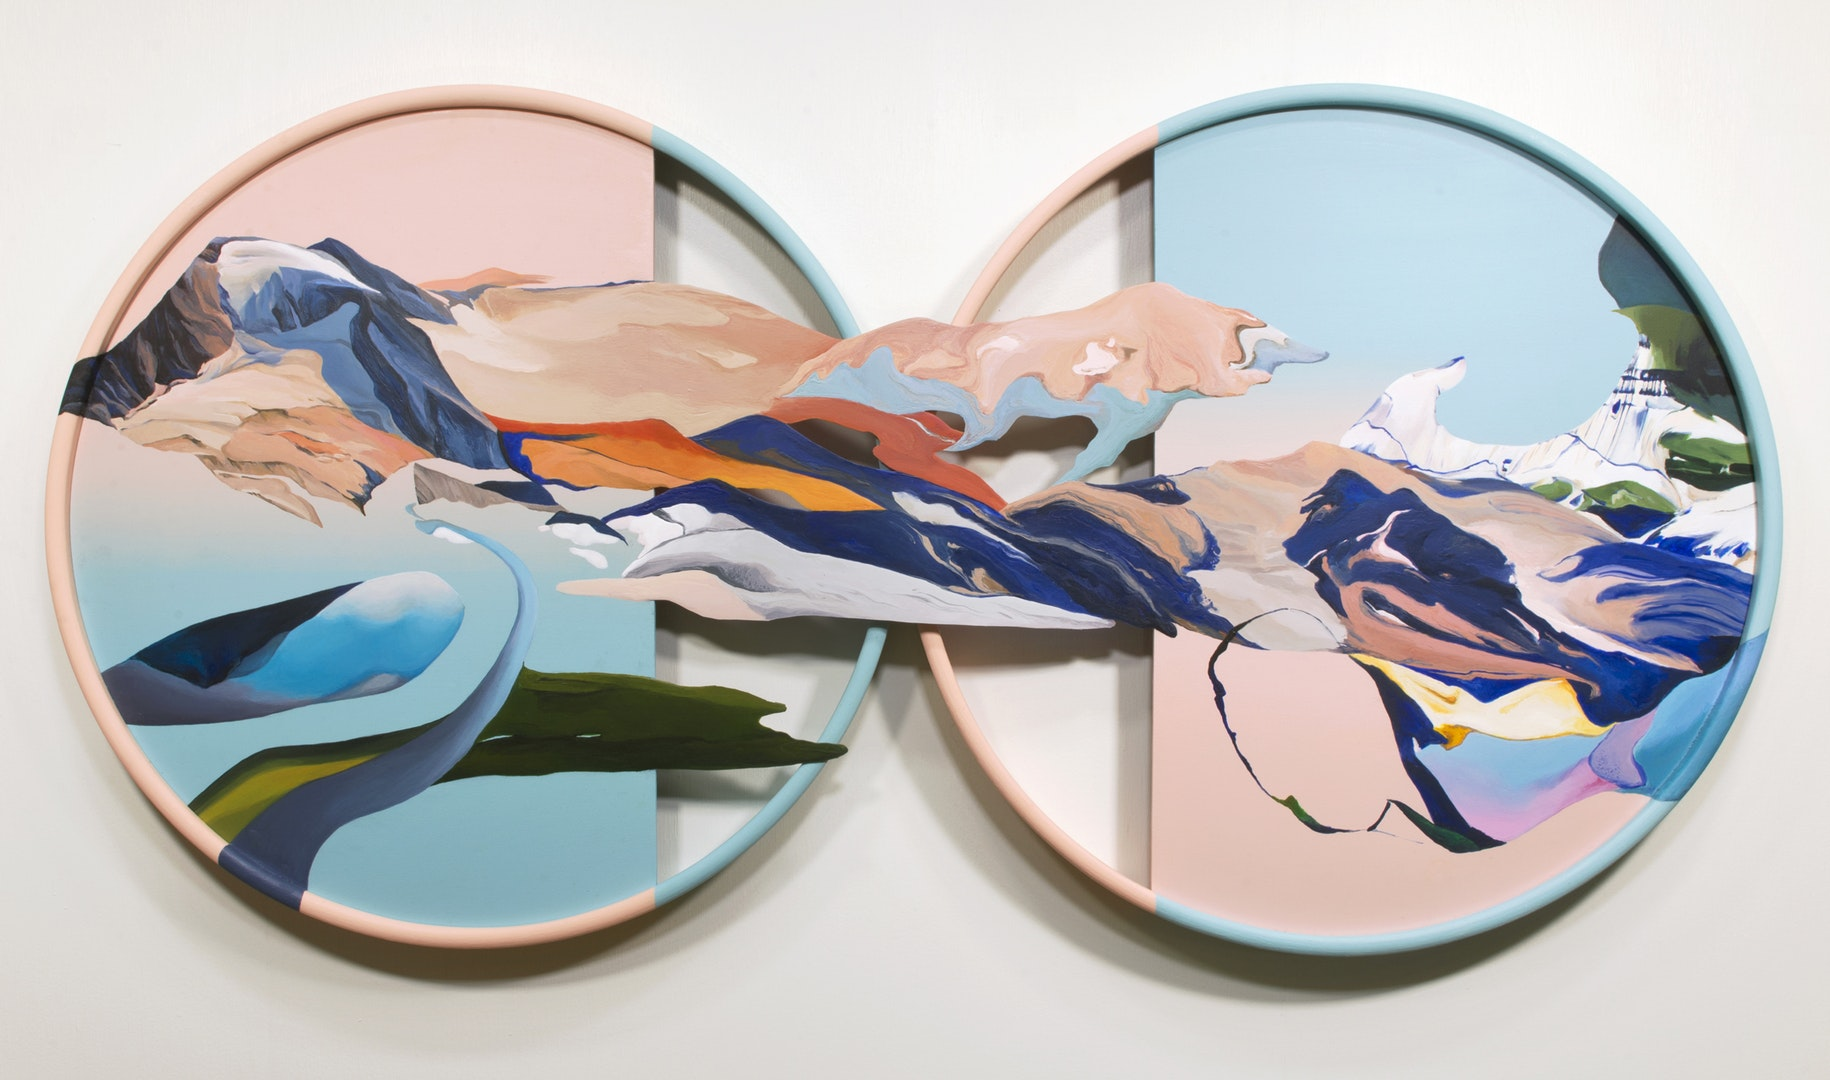 'An ordinary alteration between sun and moon', Ziling Wang, Acrylic on wood panel, 50 x 100 x 4 cm